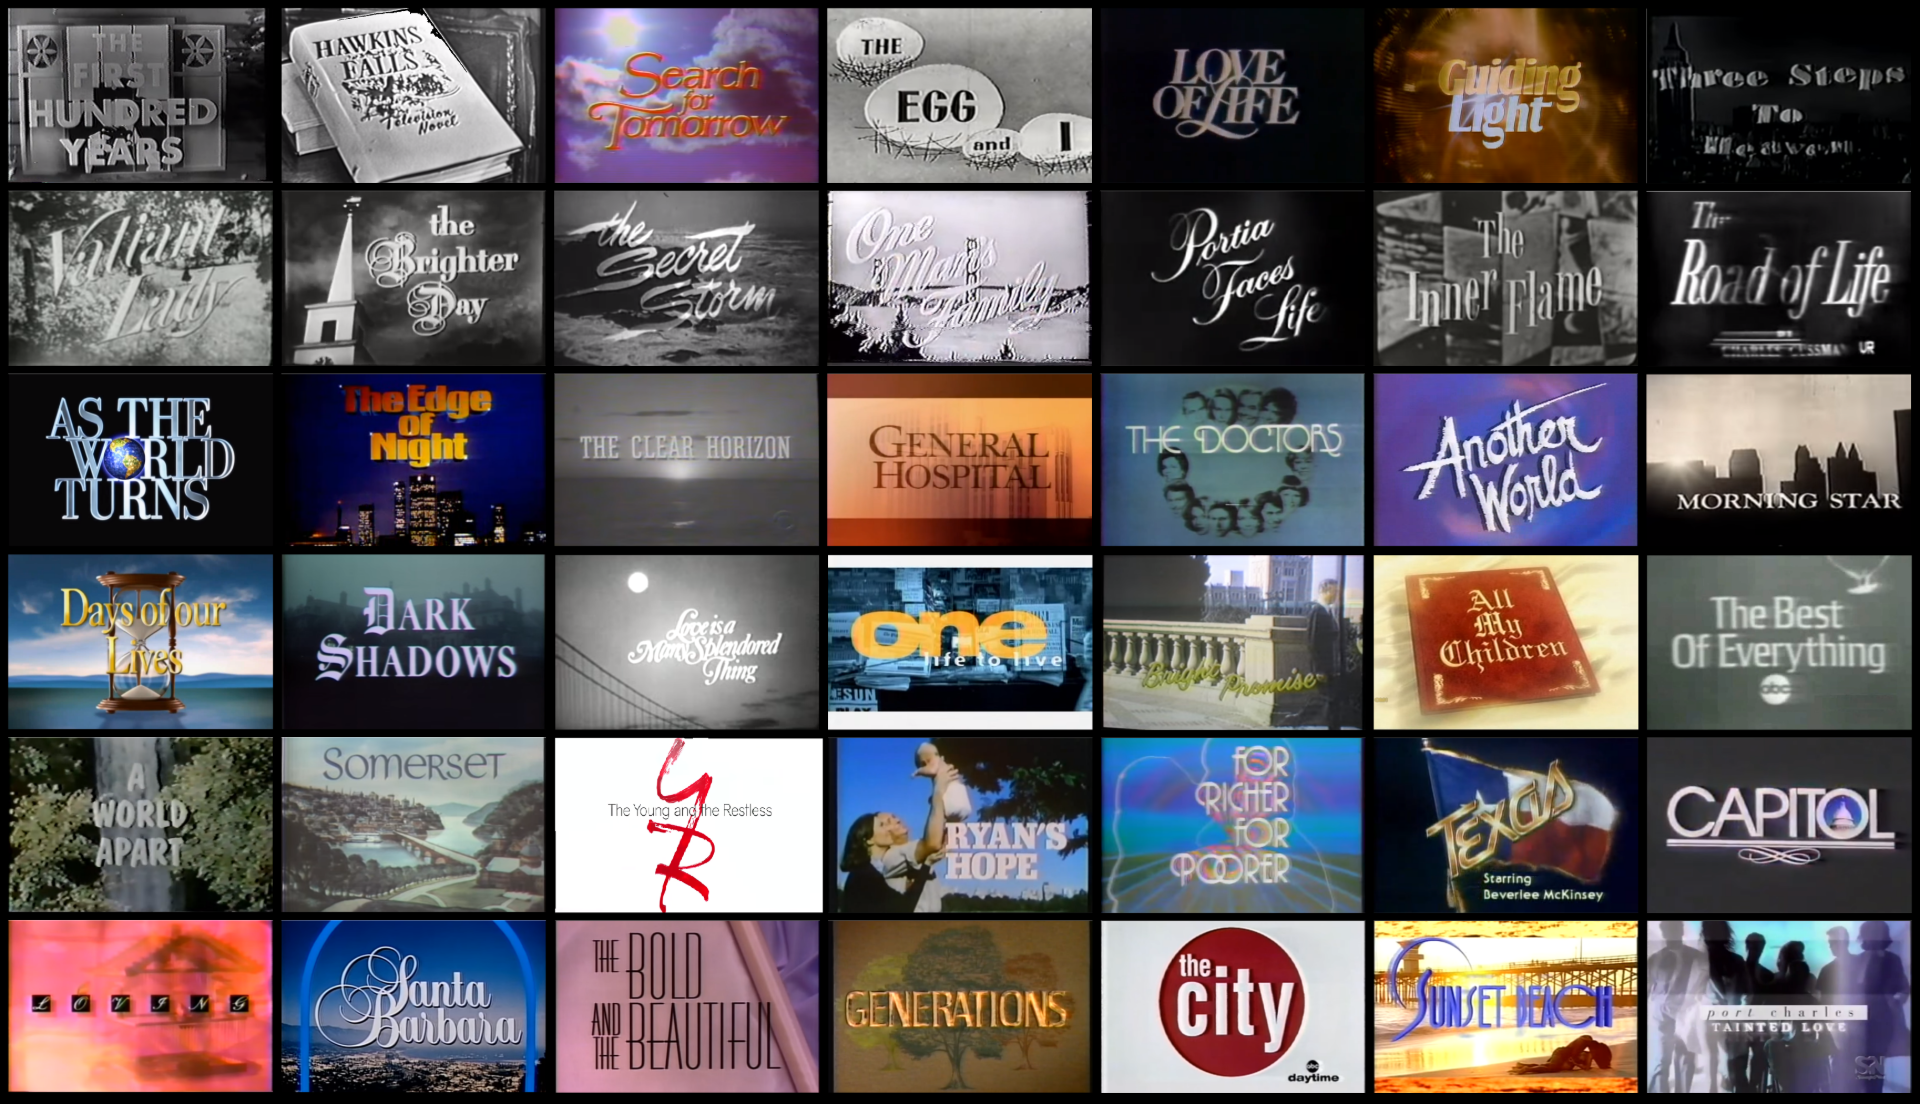 A Little Bit of Soap: From Daytime To Beyond